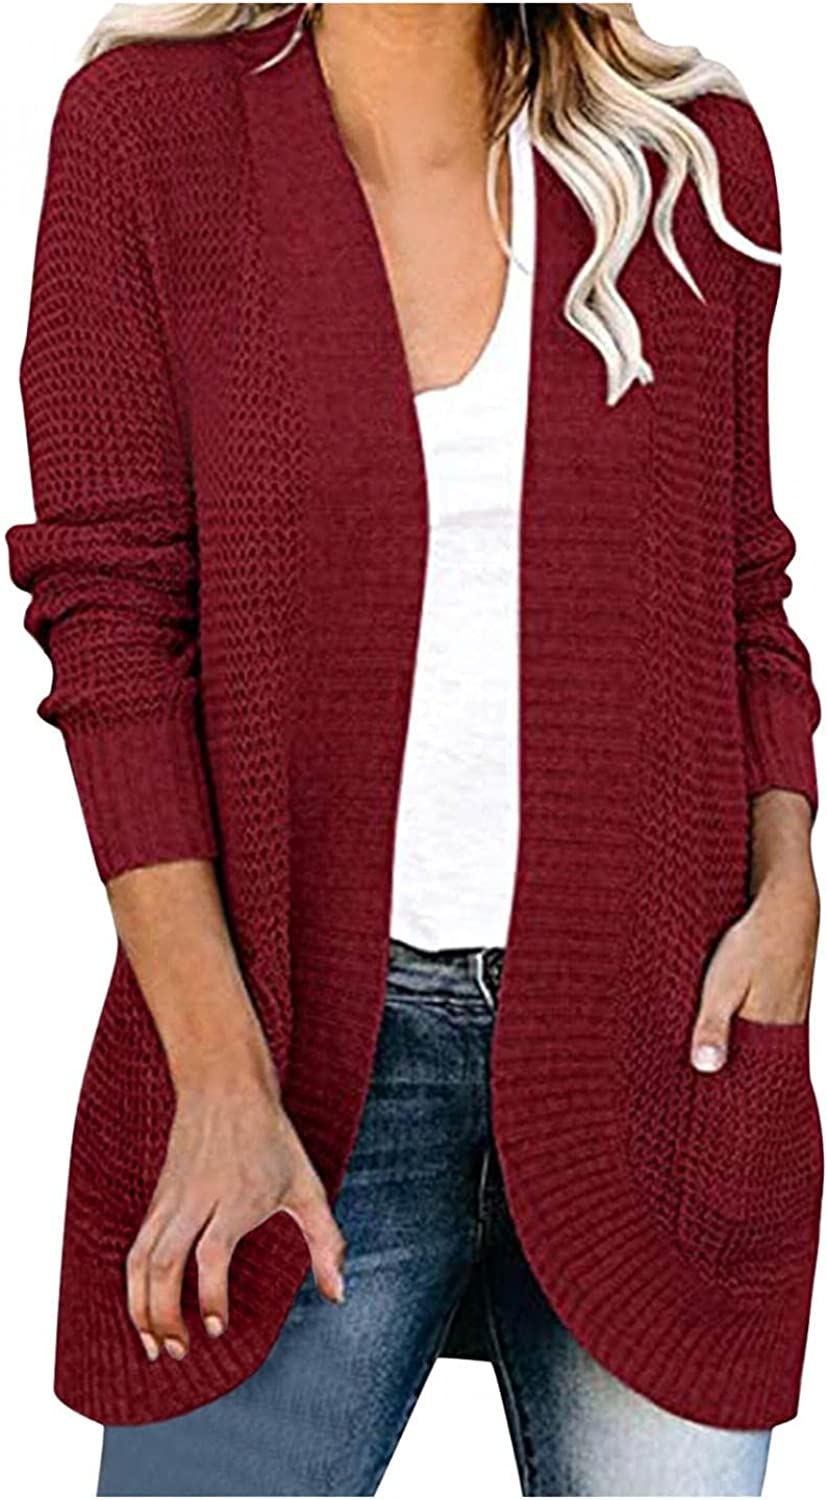 Cardigan Sweaters for Women,Women's Long Sleeve Cable Knit Cardigans Open Front Loose Sweater Outwear with Pockets